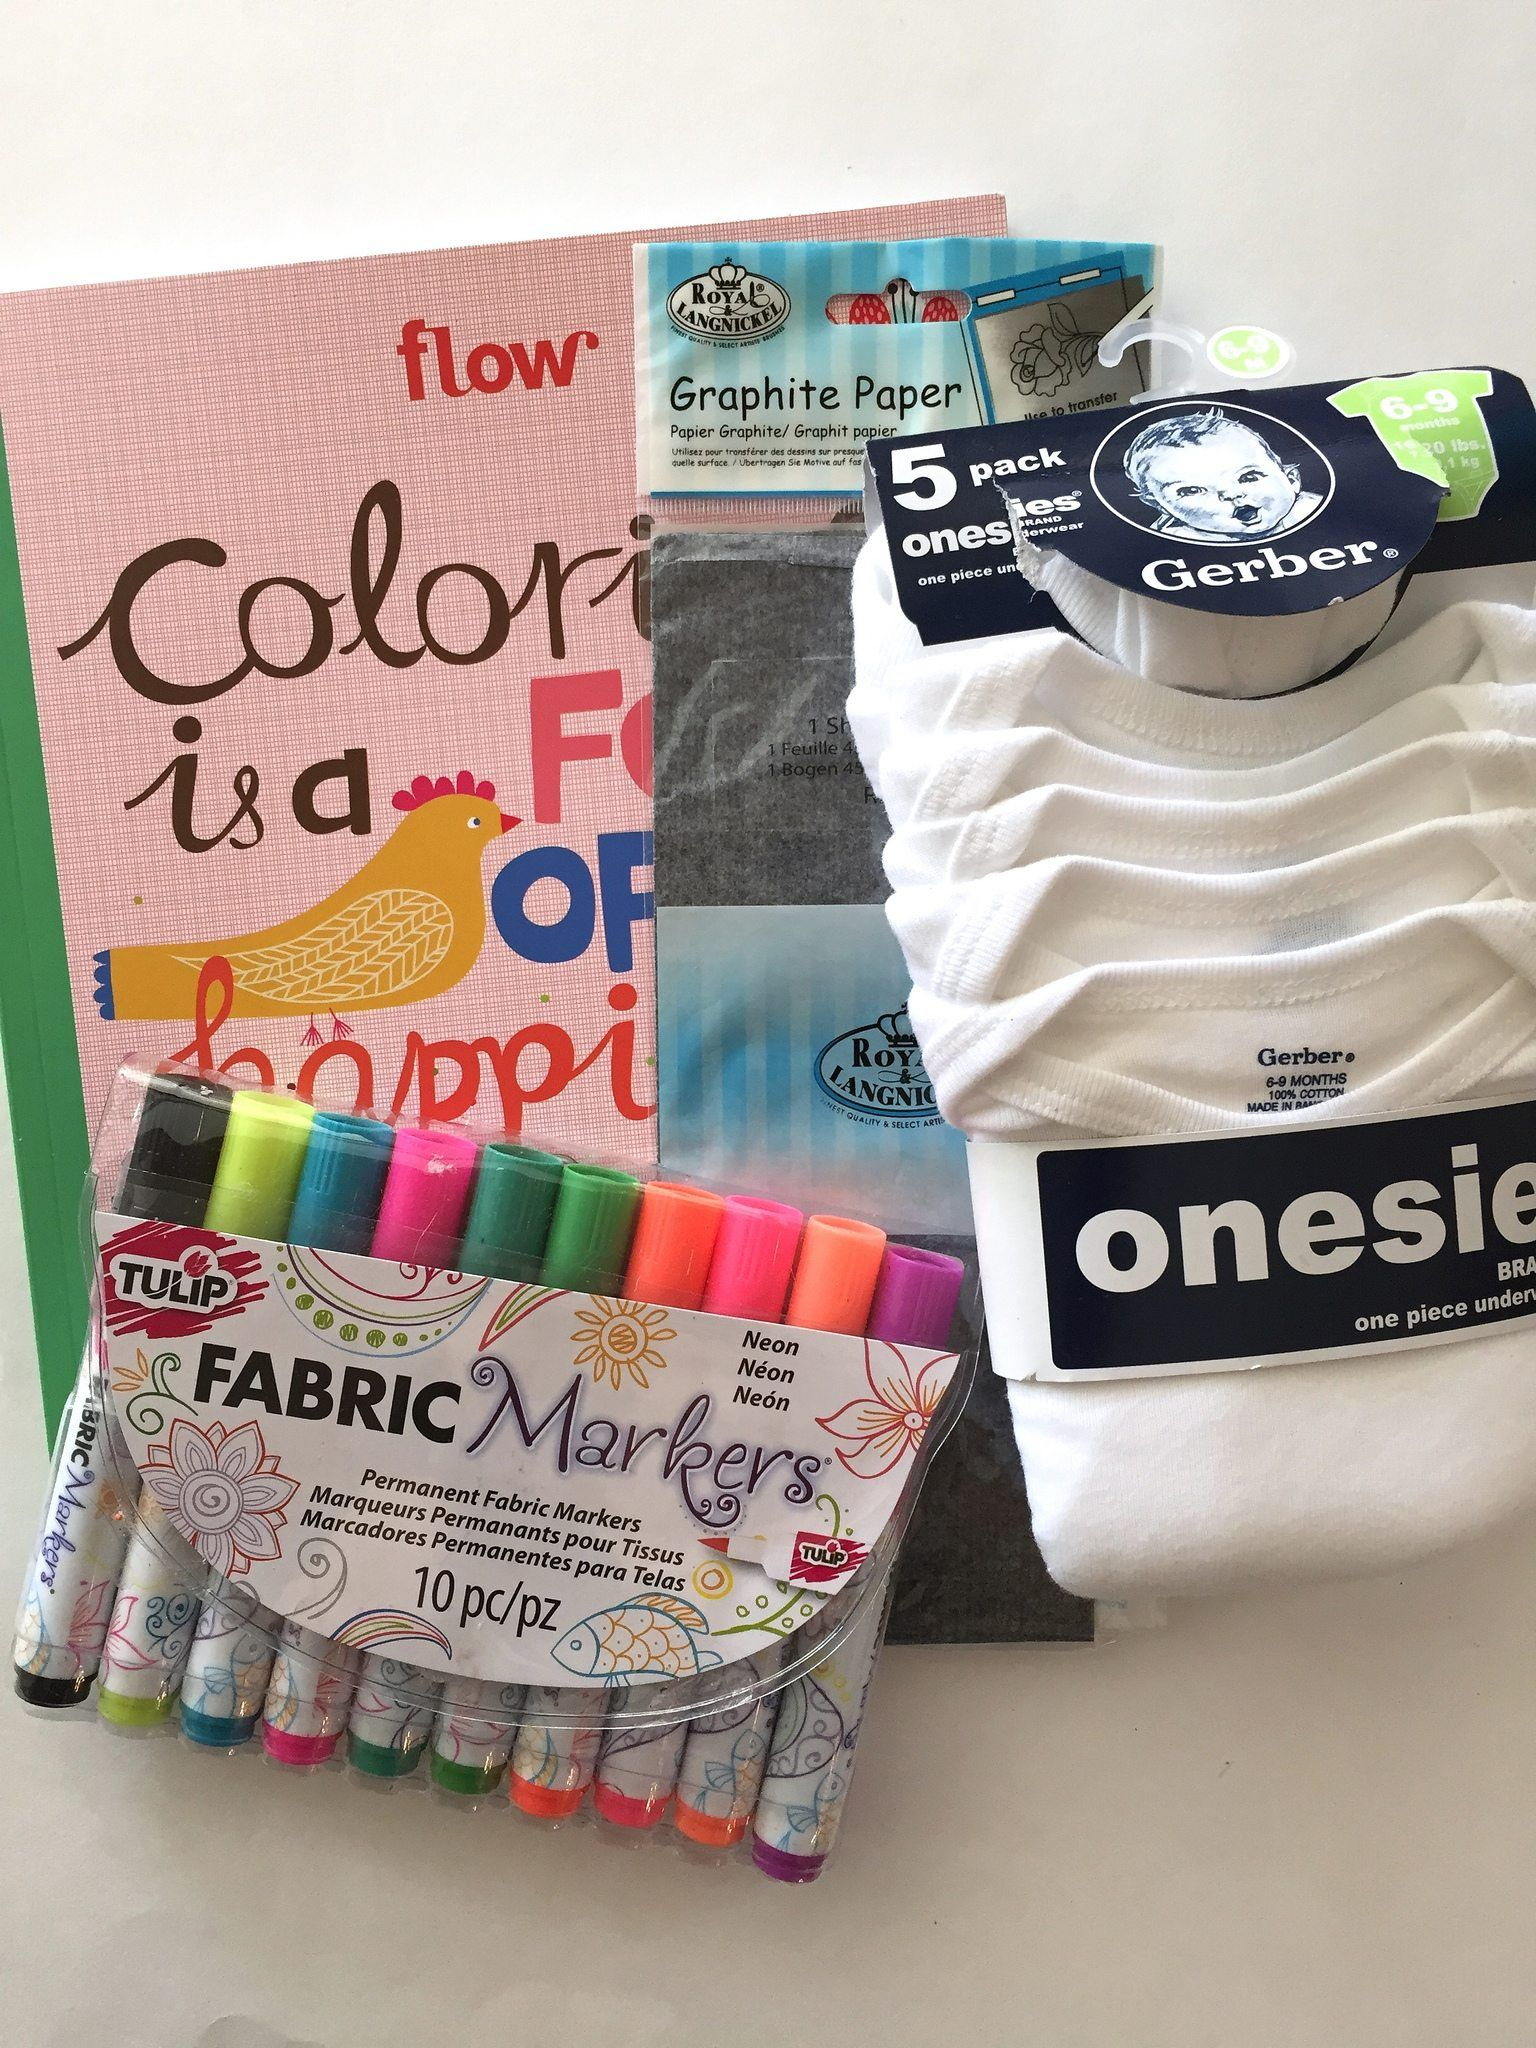 How to use a coloring book on a onesie. #JenniferPerkins #diy #diyproject #crafts #crafty #CreateEveryday #DoItYourself